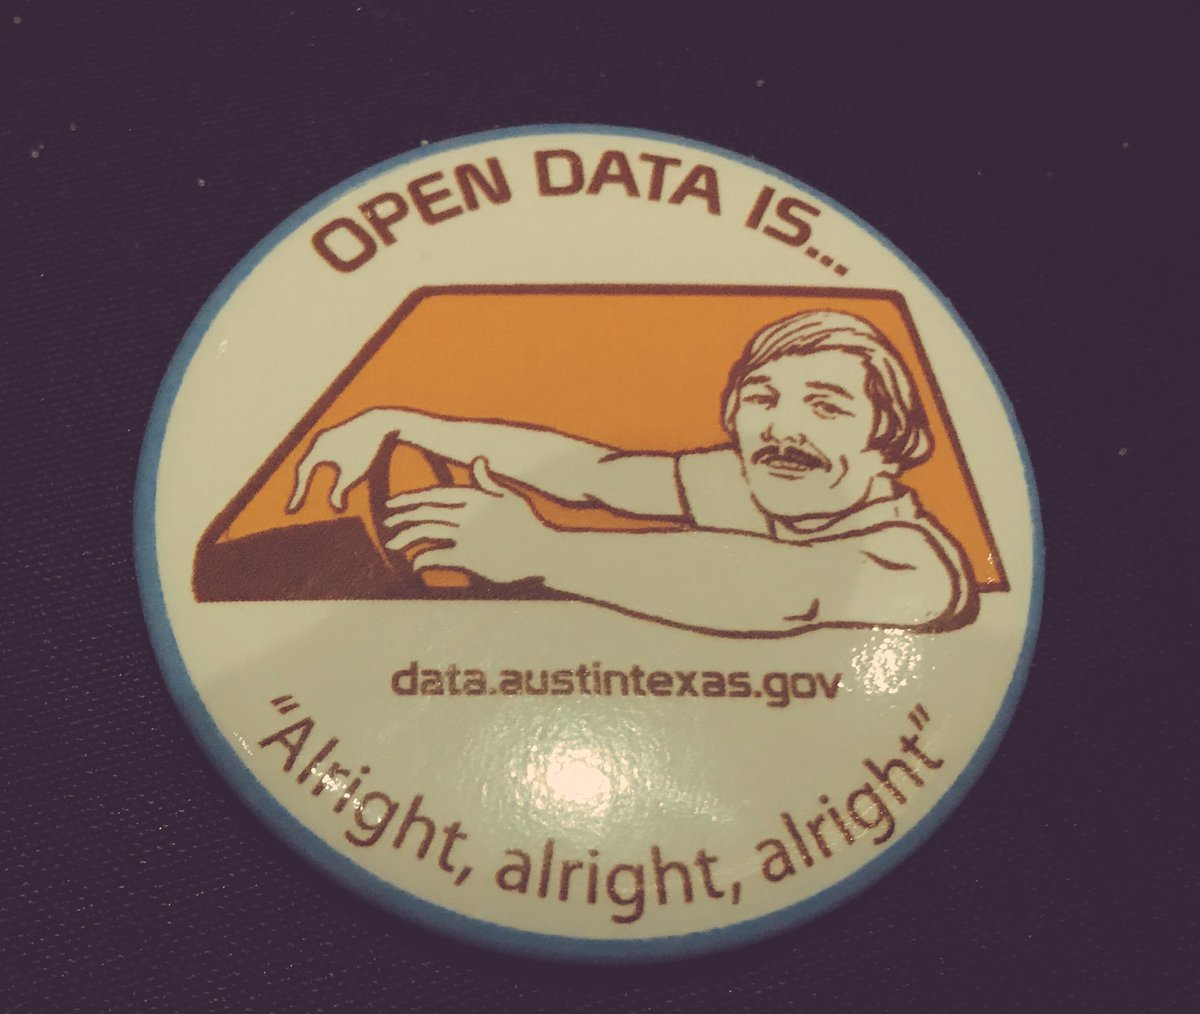 It's been real, @VisitAustinTX @austintexasgov! Thank you for living to your rep as a vibrant music town. Your new toy museum also opened a floodgate of memories. Final thx to @socrata for convening great group #OpenData practitioners. #KeepAustinWeird #Voltron<br>http://pic.twitter.com/jJWONQqWEQ